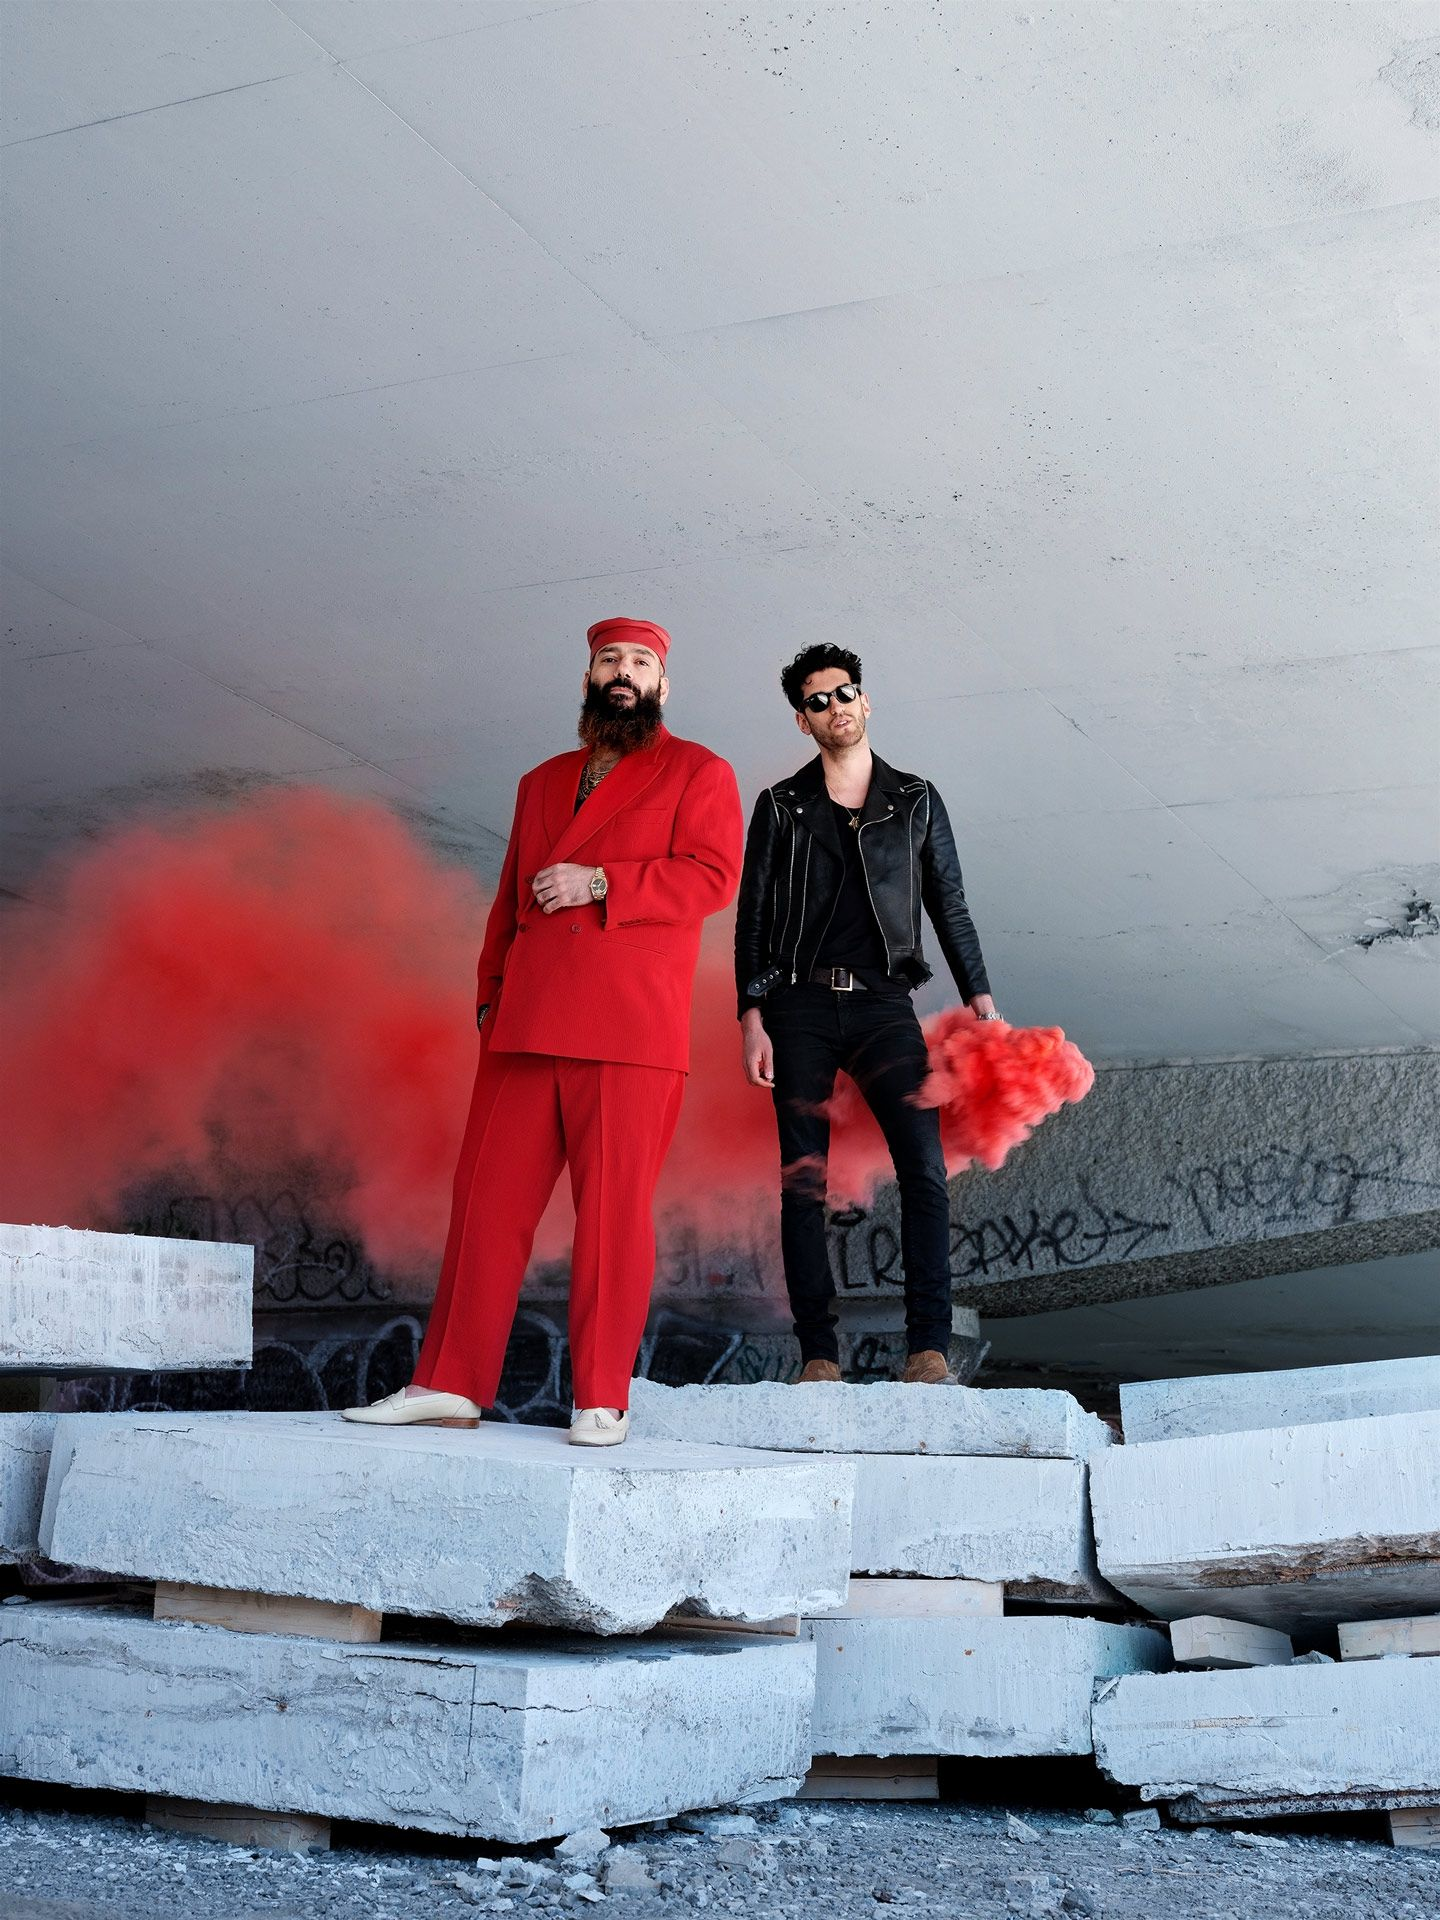 Chromeo Funklordz portrait male group duo music editorial outside smoke on cement block using red smoke bombs photographed by Guillaume Simoneau for Voir cover magazine documentary summer